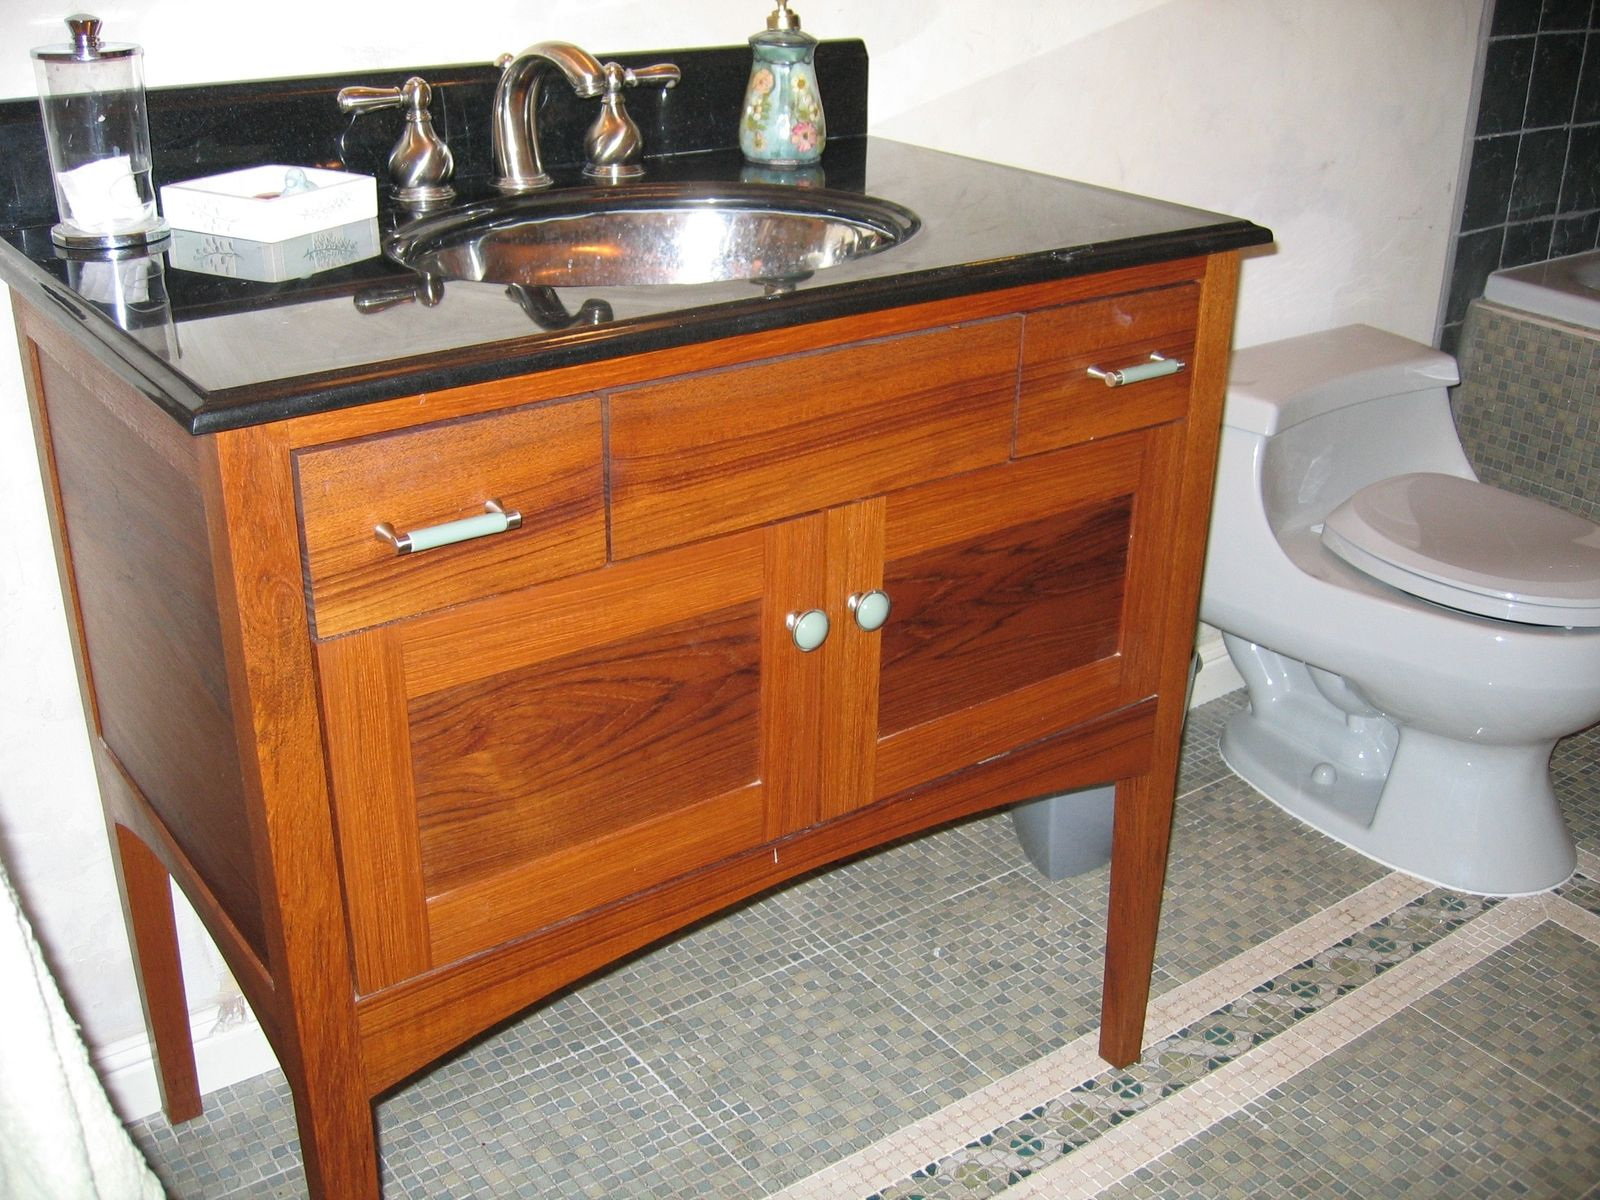 Inspirational Hand Crafted Custom Teak Furniture-Style Bathroom Vanitynear intended for Furniture Style Bathroom Vanities